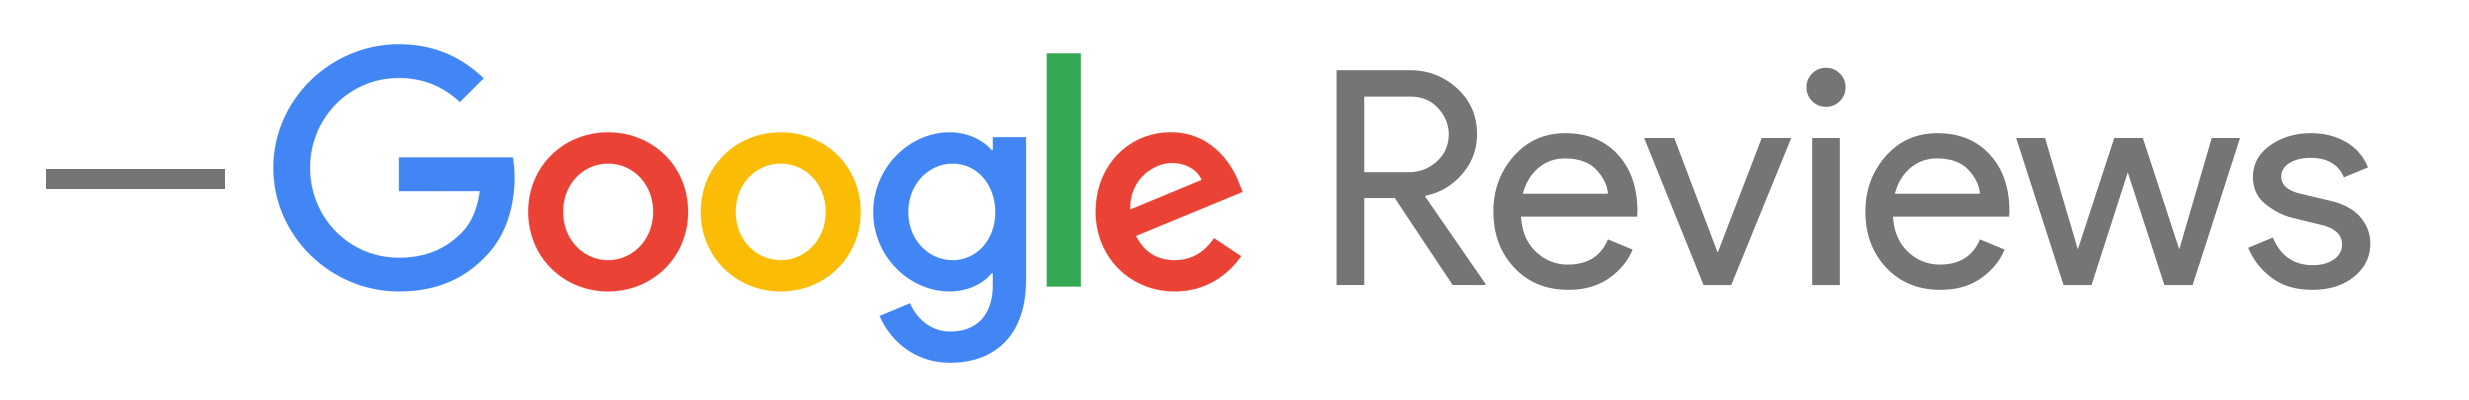 webaholics google reviews logo